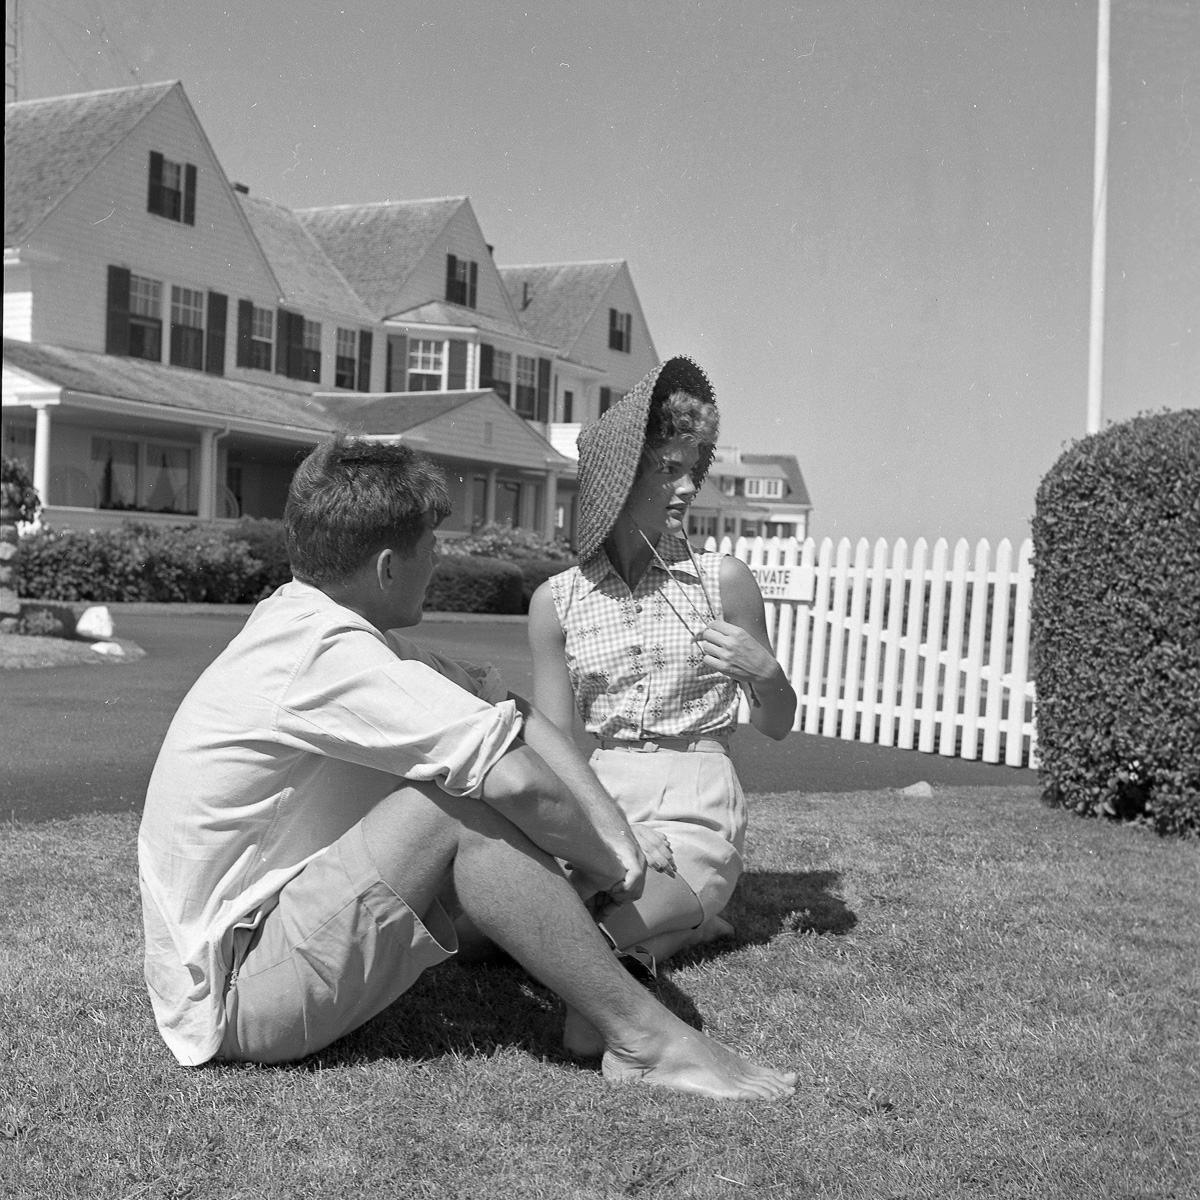 Jacqueline Bouvier and John F. Kennedy in June 1953 via Getty Images/The Hy Peskin Collection